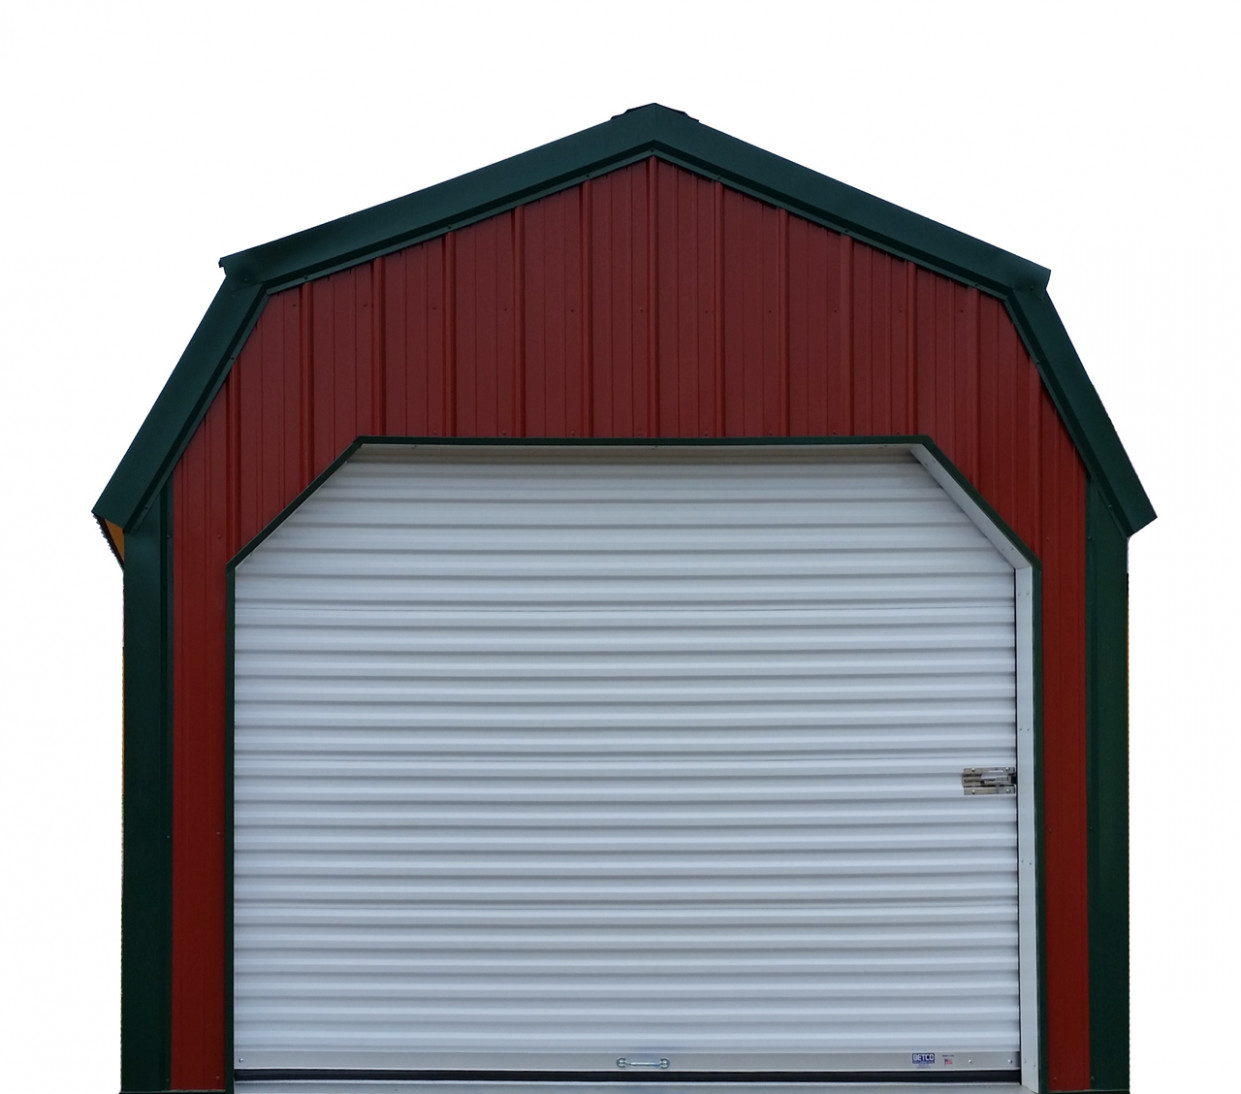 DOORS (Include Curtain Panels, Tension Adjuster, Axle Drums, Track, Stiffener, Springs, Latches And Hardware Kit) Carport Garage Door Kit